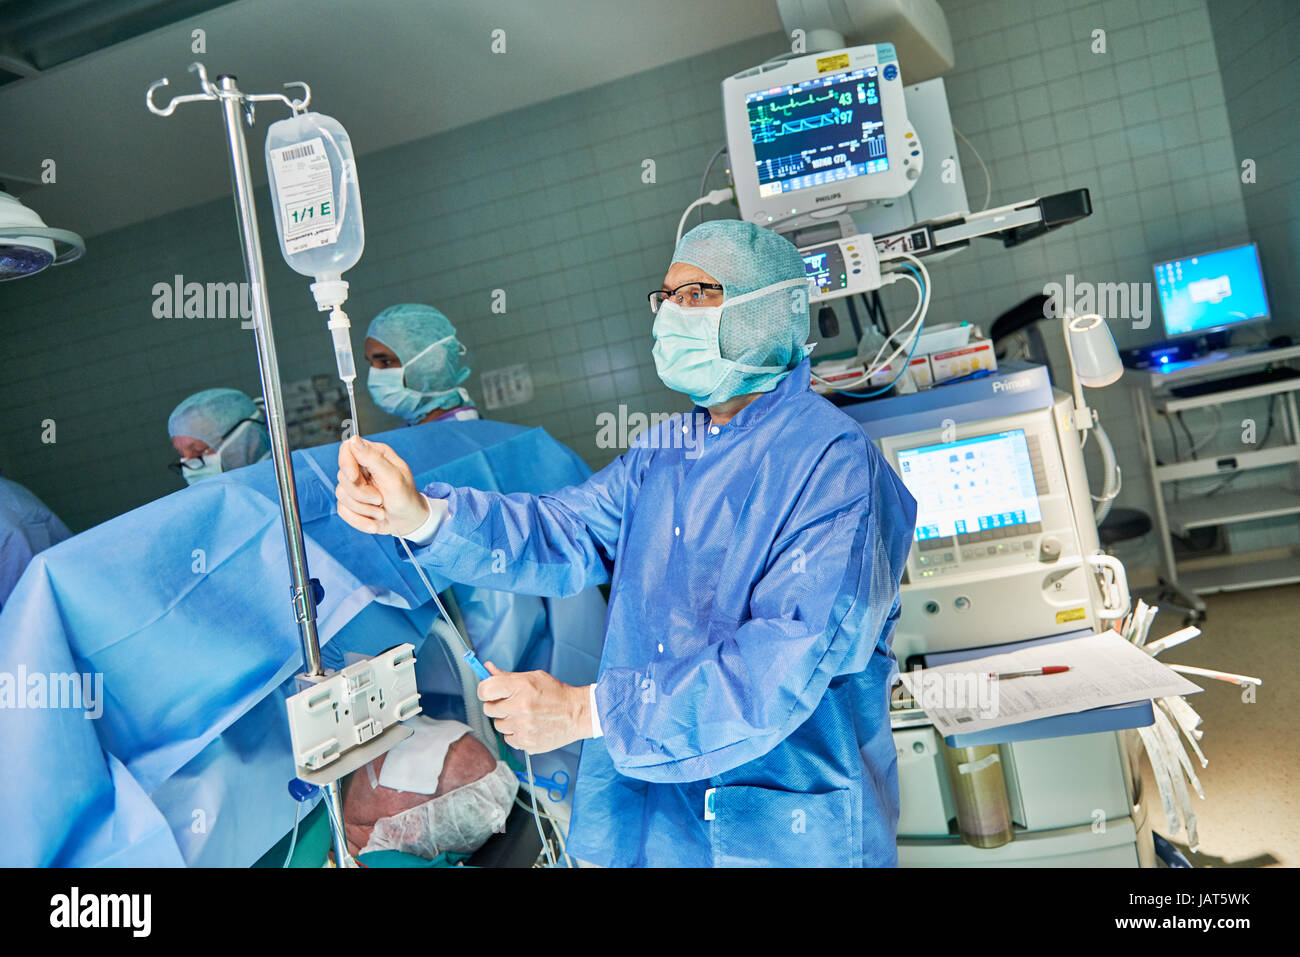 anesthetist at work,view of a medical team operating a patient - Stock Image